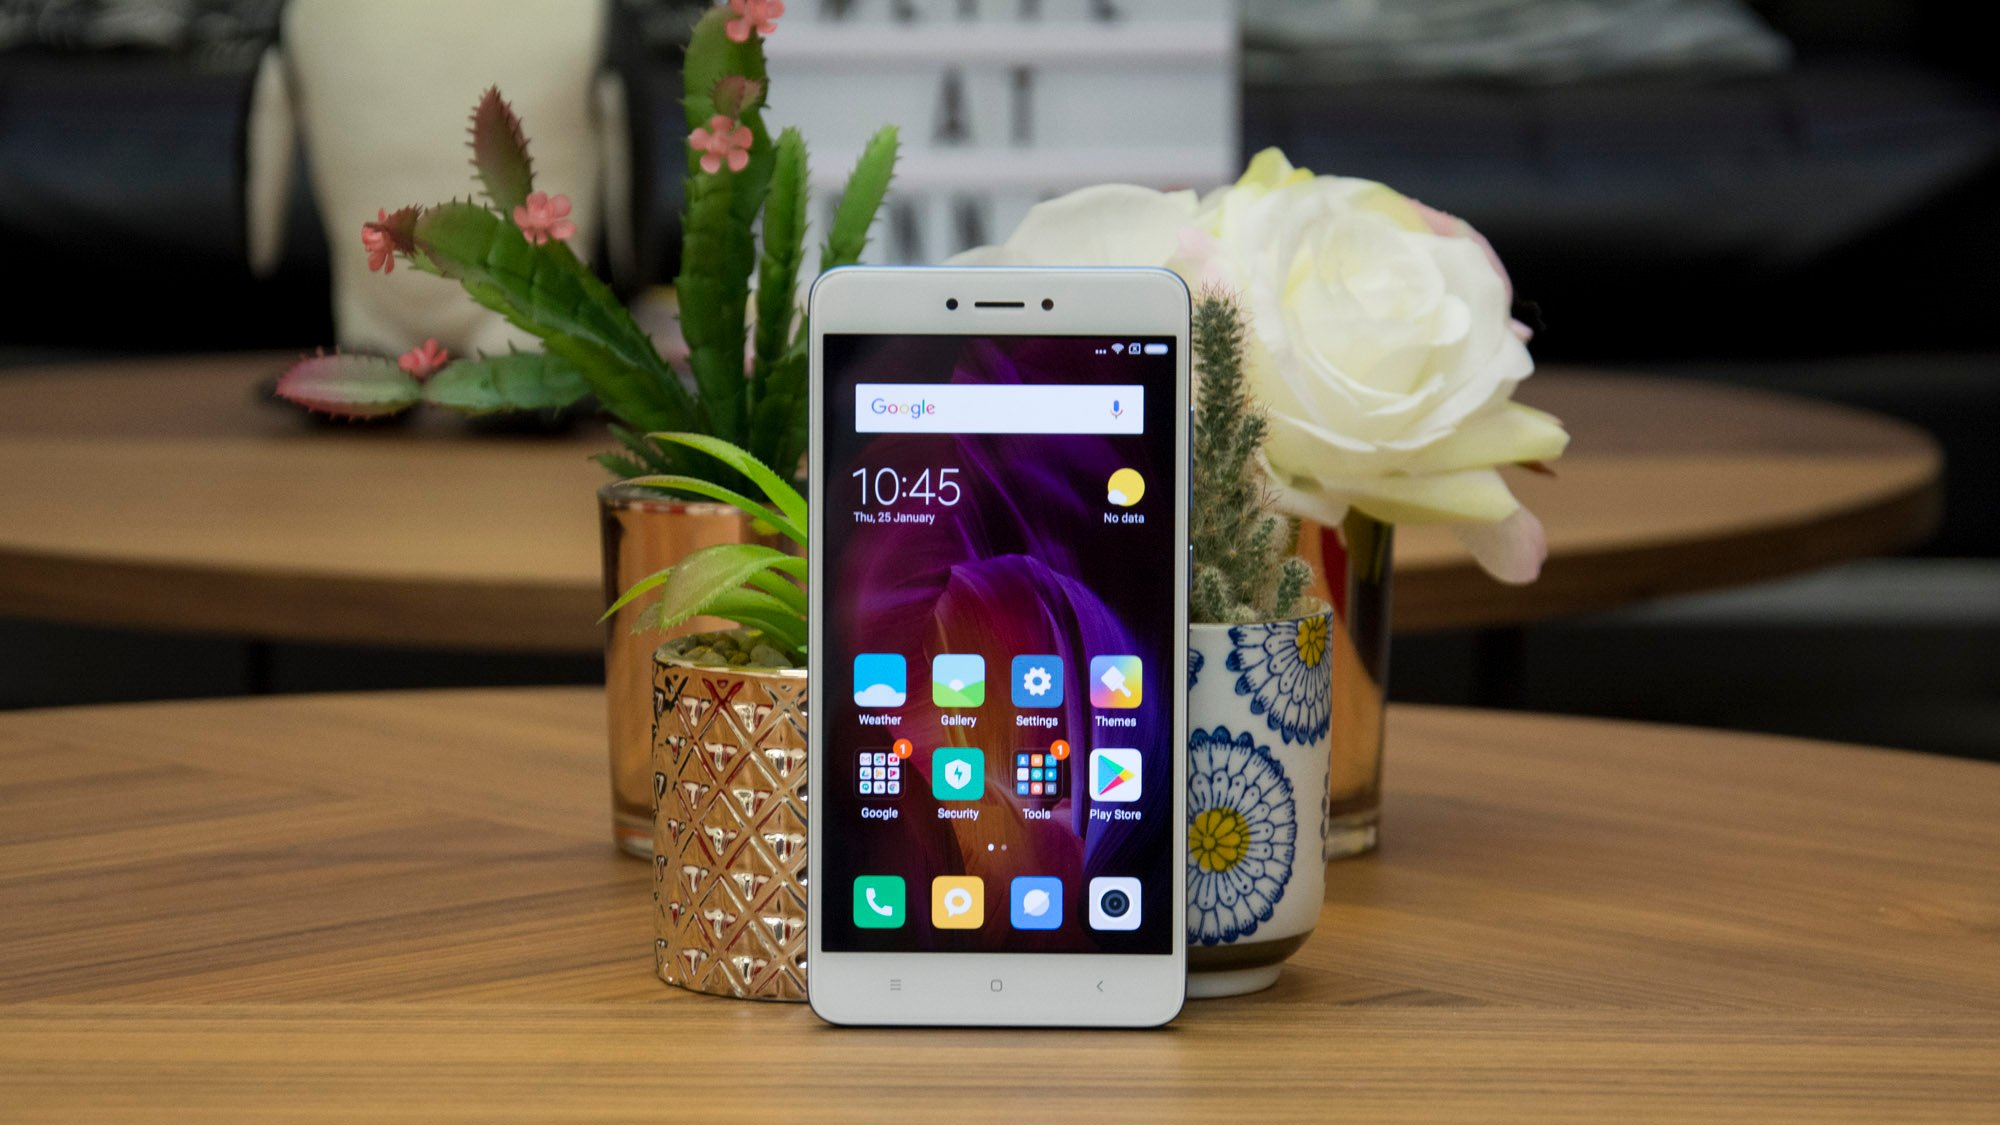 Xiaomi Redmi Note 4X review: The new £150 smartphone king? | Expert